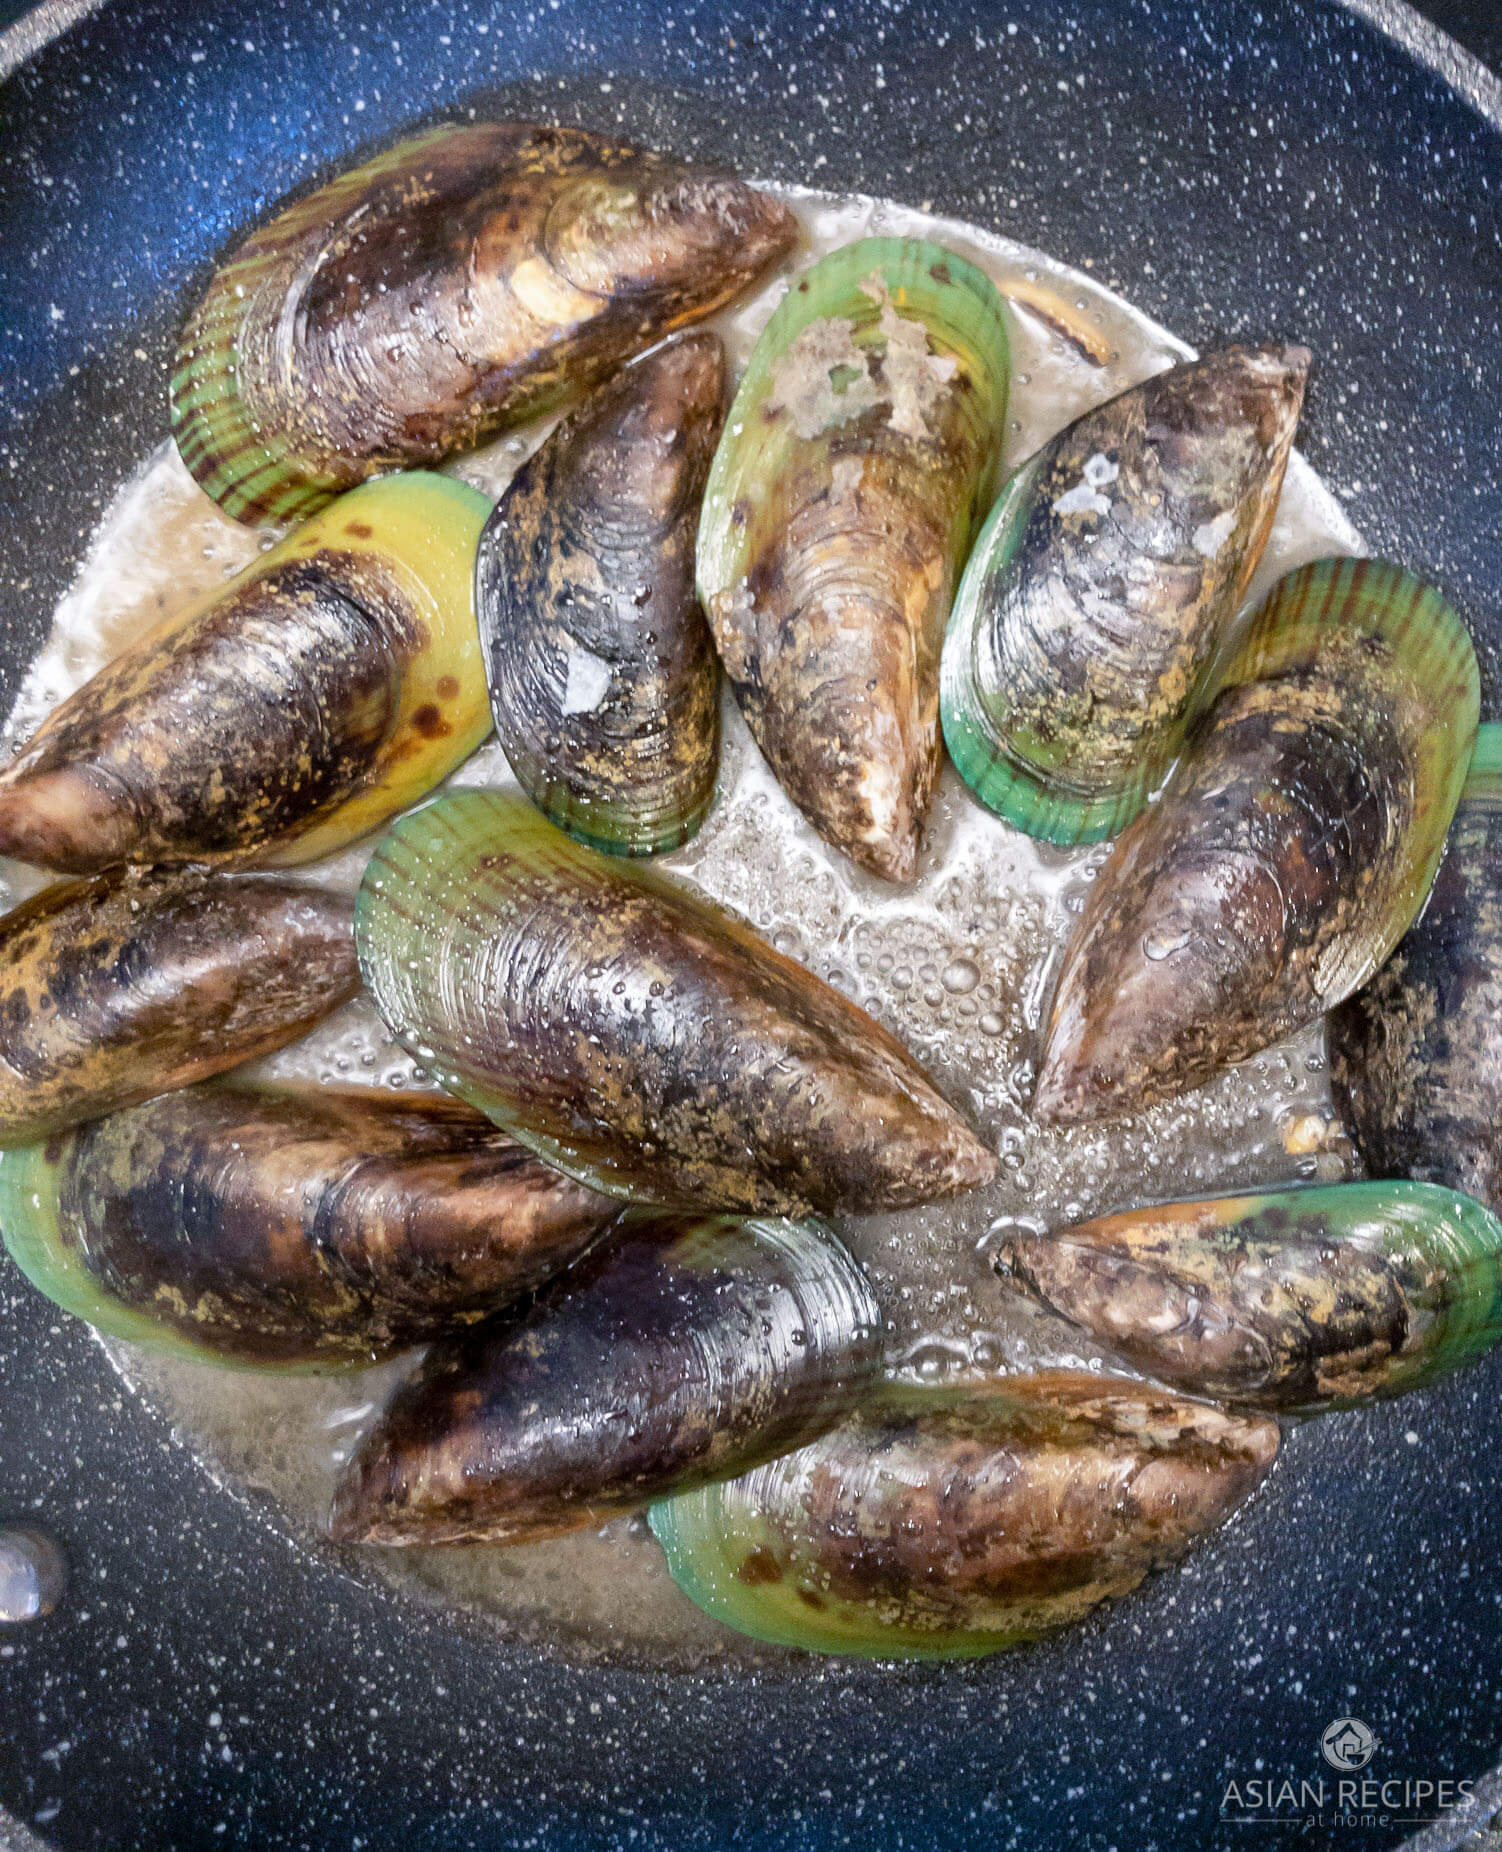 Cooking New Zealand mussels on the half shell in this recipe